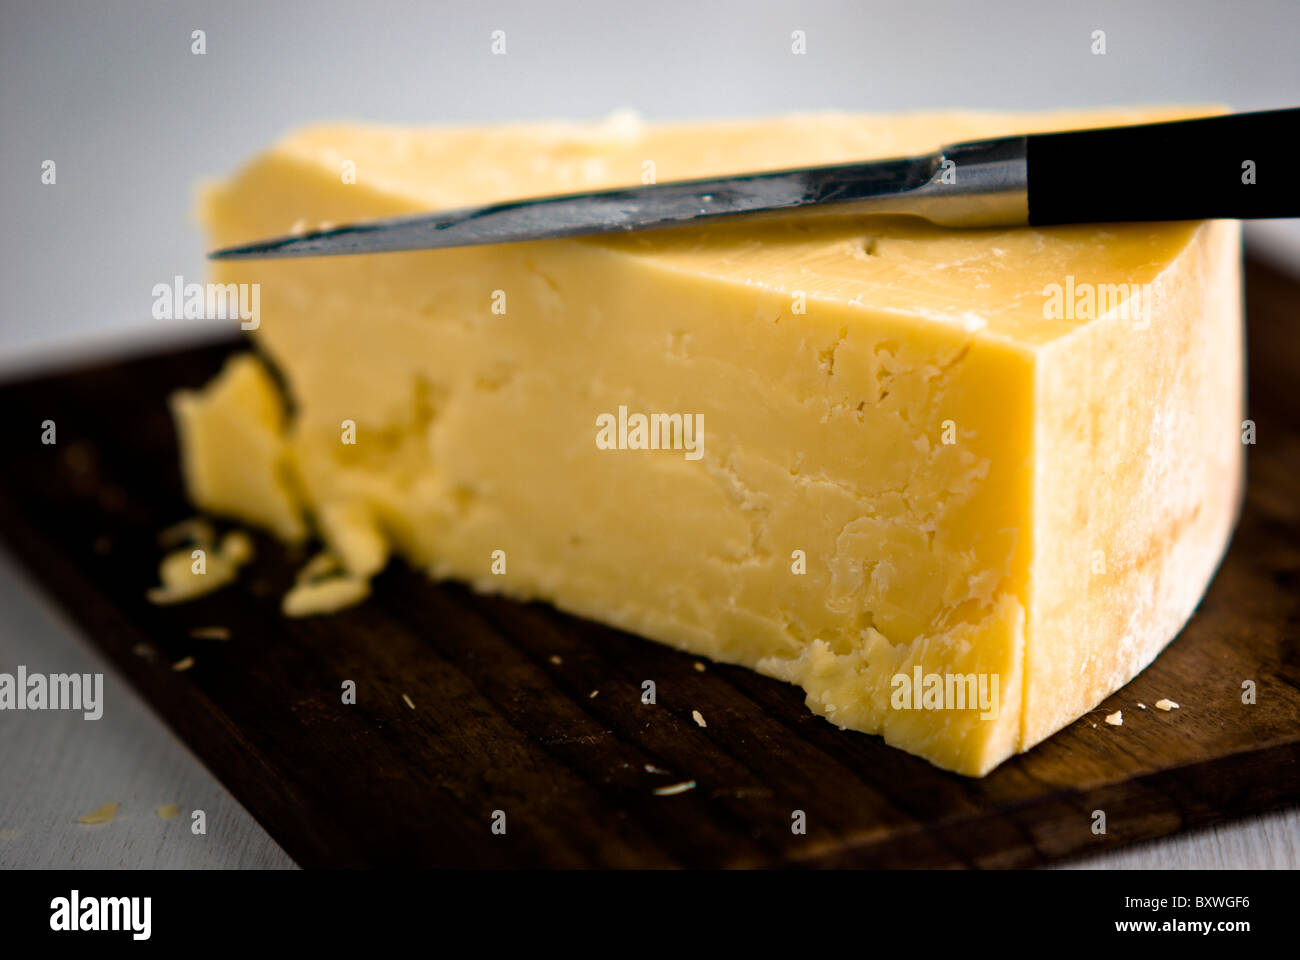 Wedge of cheddar cheese, being cut on wooden cheeseboard - Stock Image